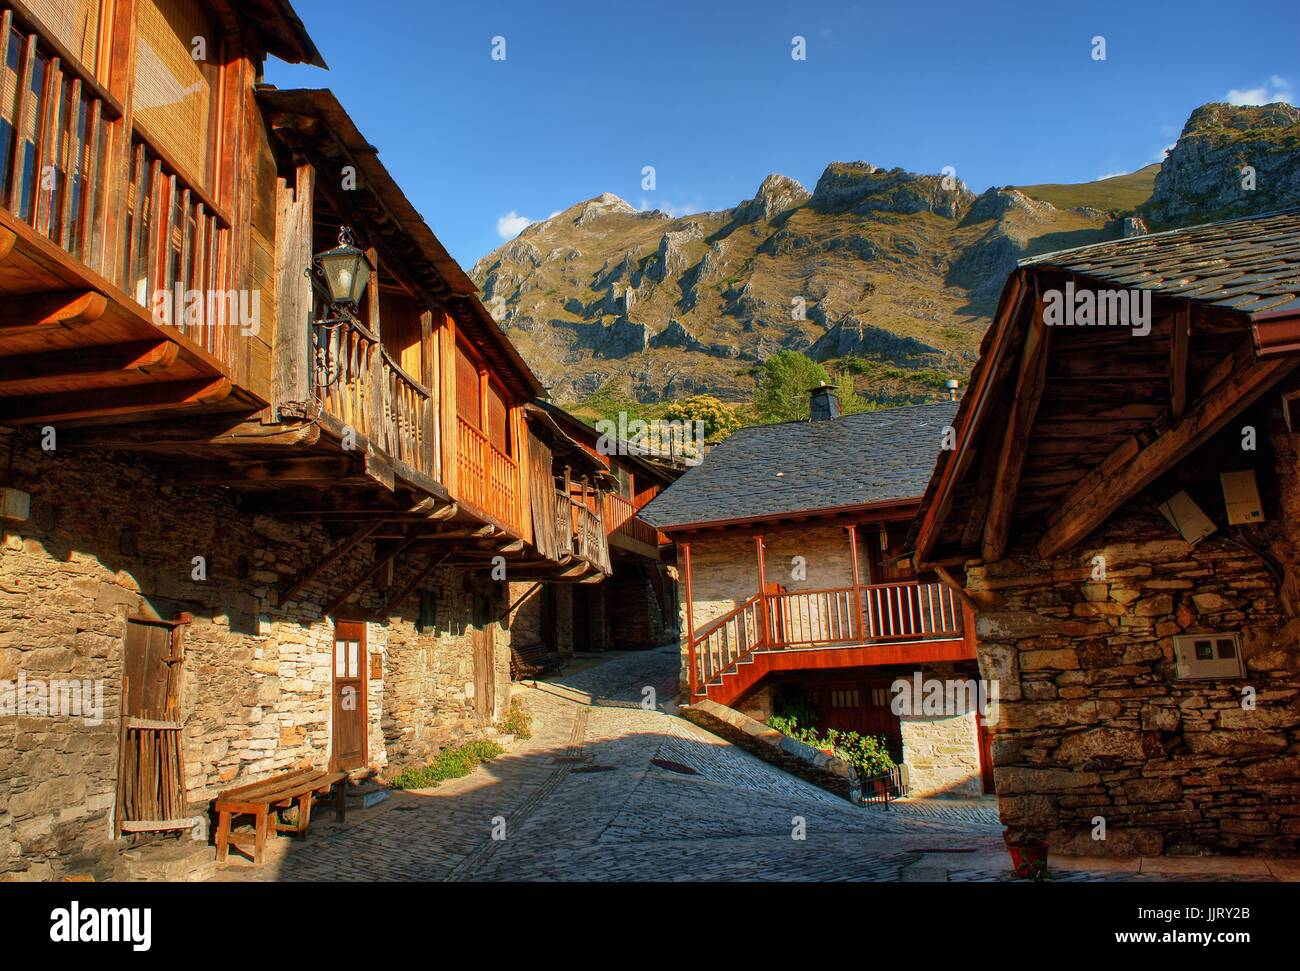 Penalba de Santiago, a typical village in the valley of silence, Leon, Spain - Stock Image